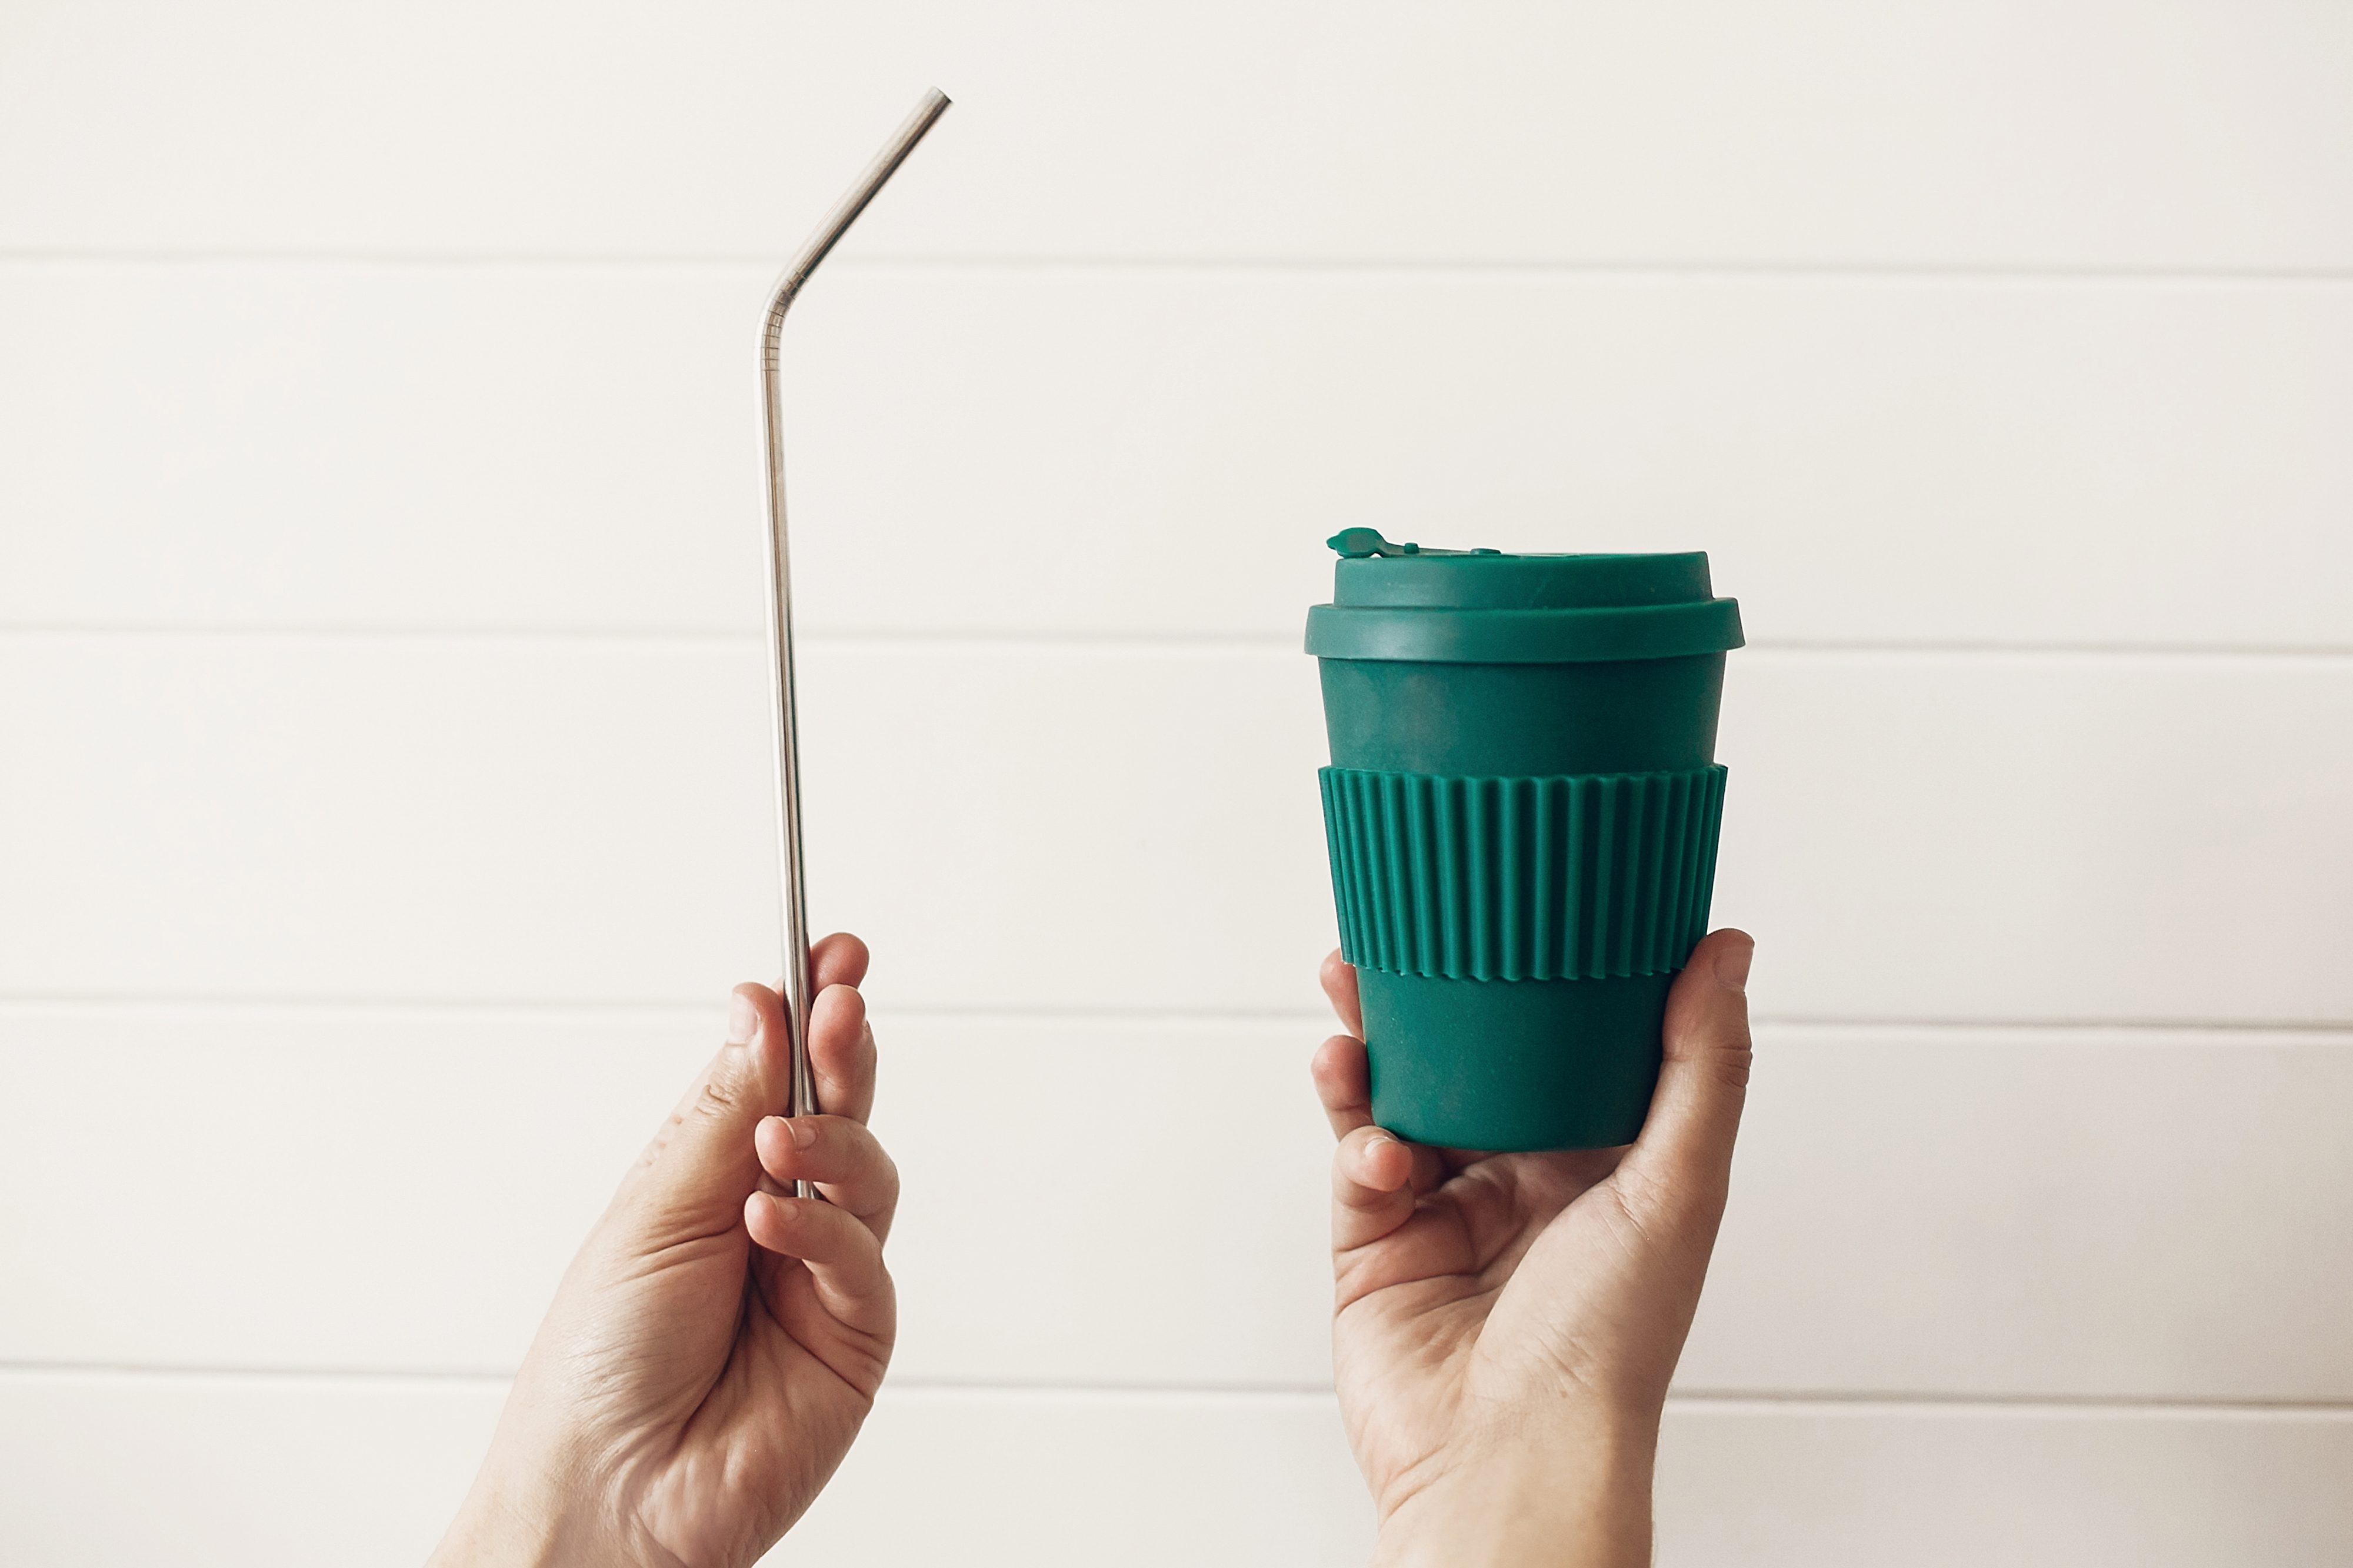 Hands holding stylish reusable eco coffee cup and steel straw on white wooden background. Zero waste. Green Cup from natural bamboo fiber and metallic straw, Ban single use plastic.